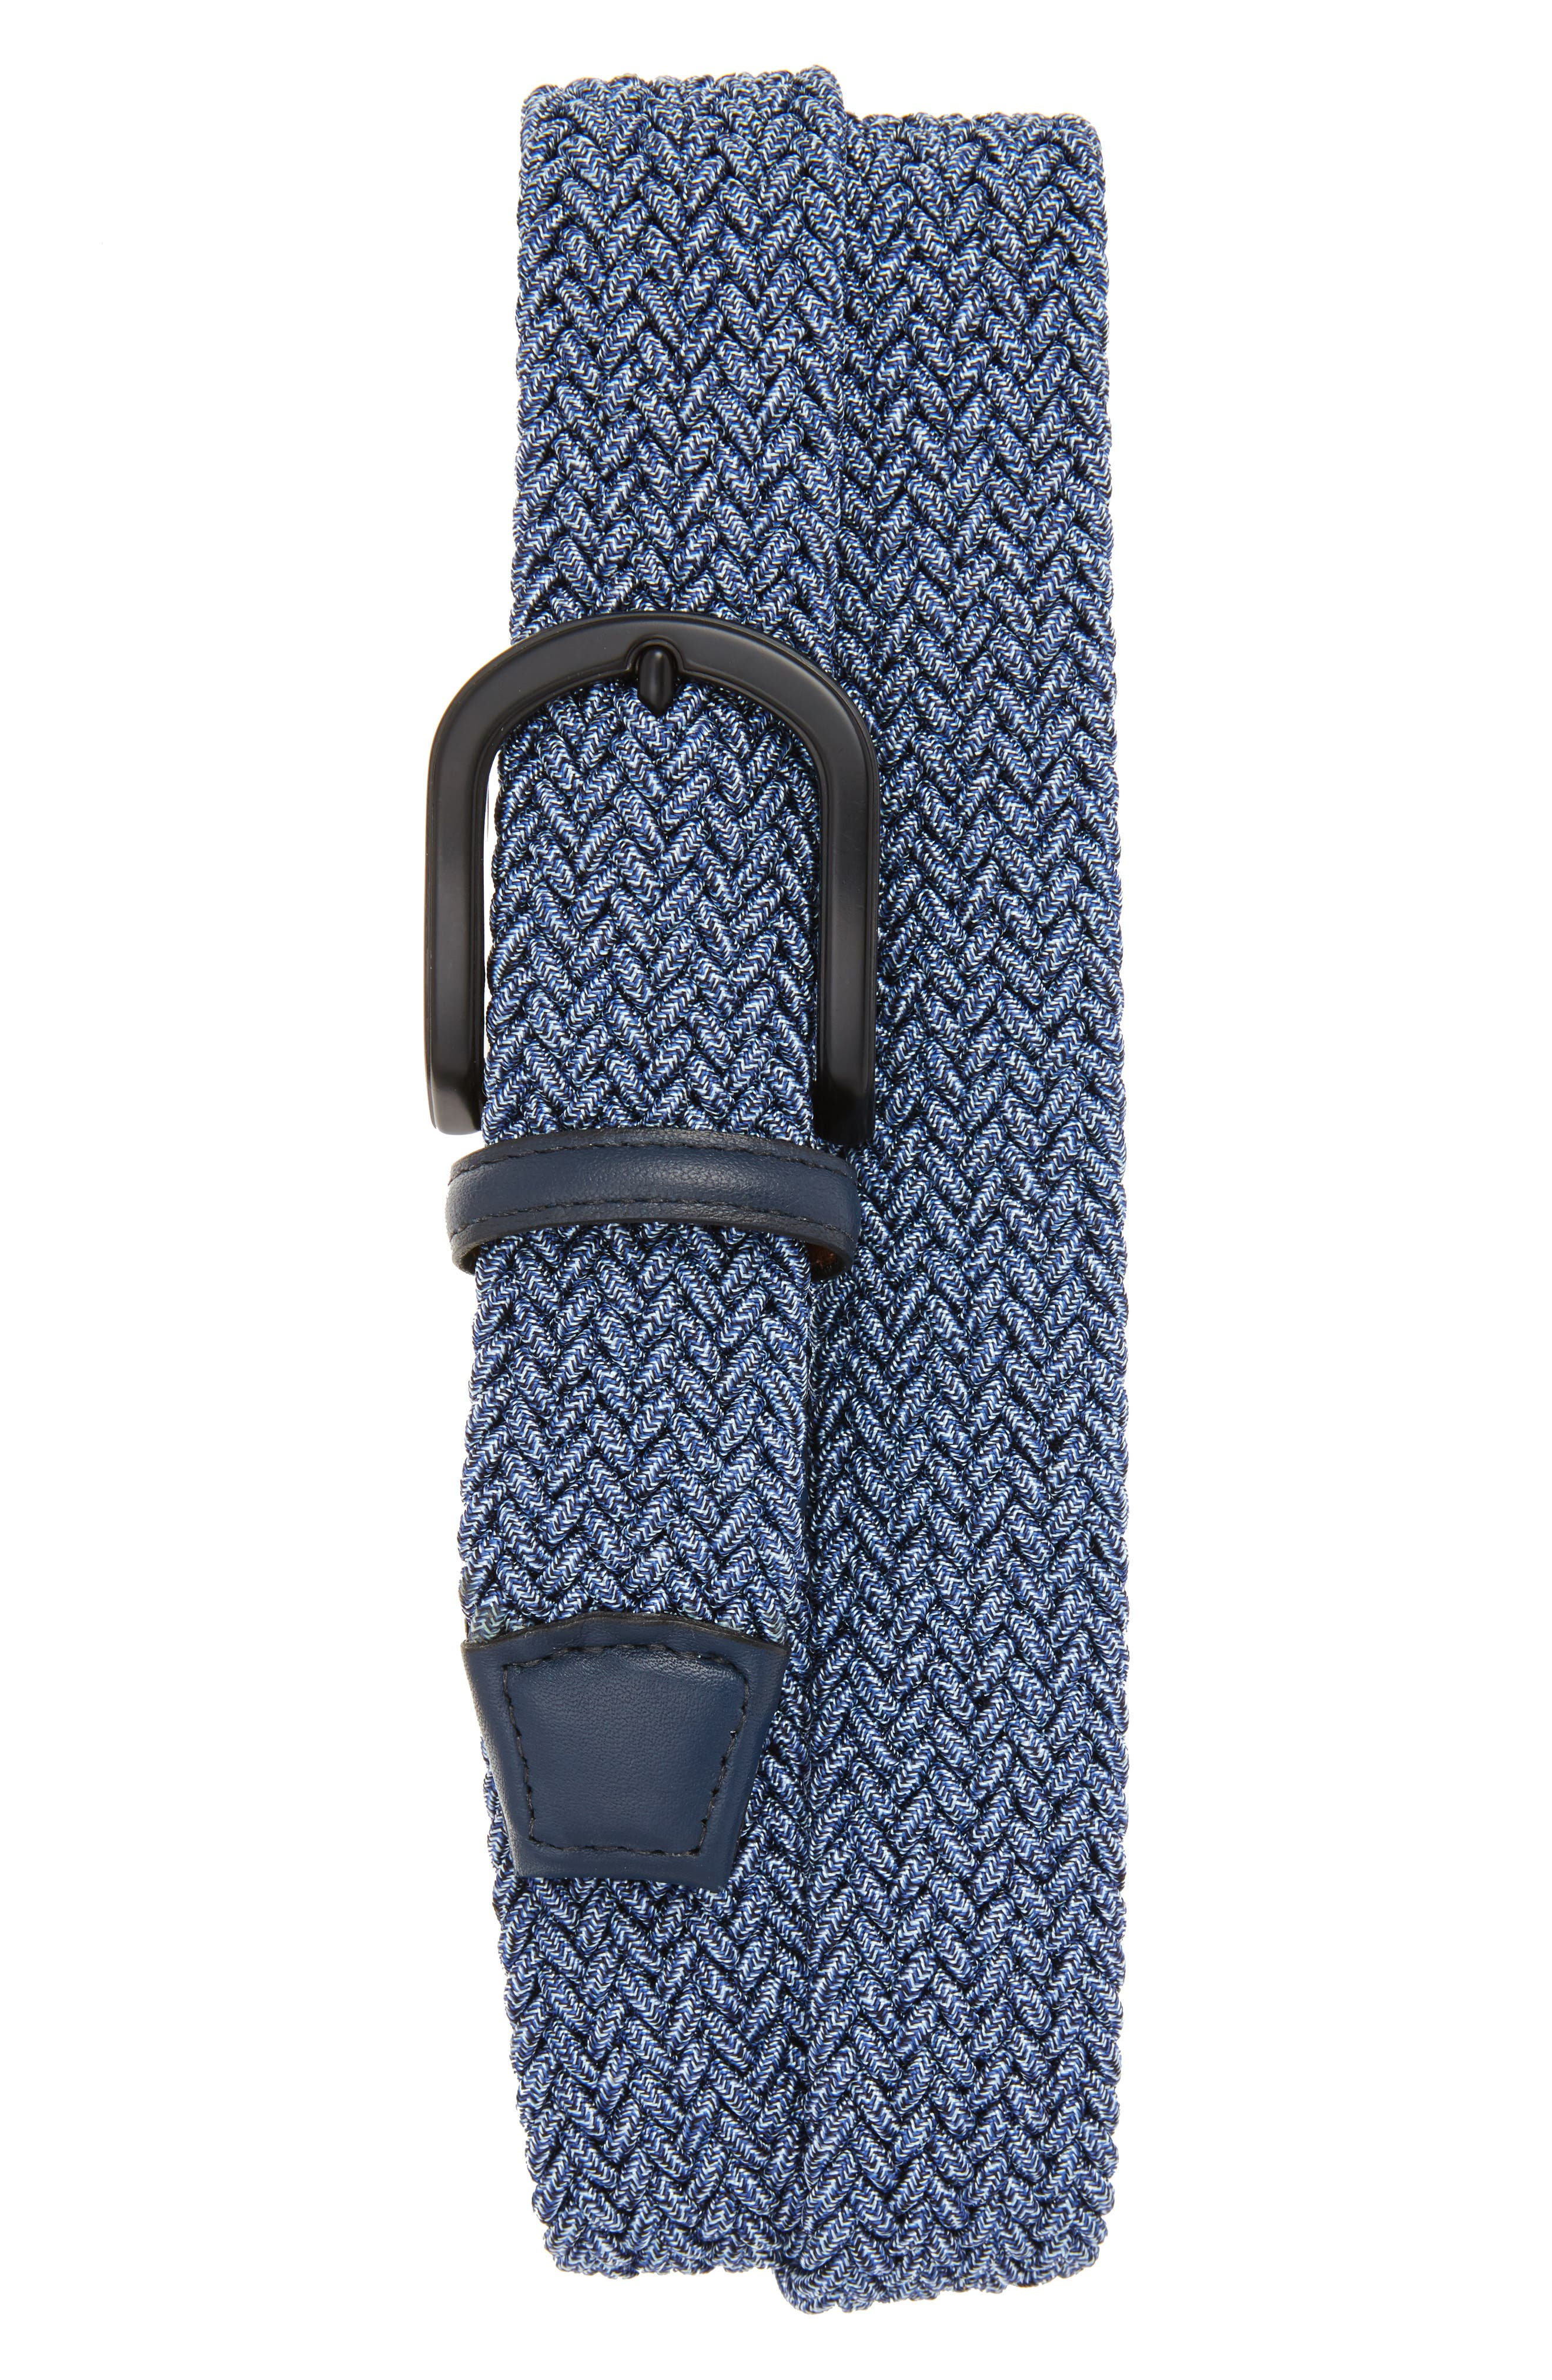 Braided Mélange Belts,                             Main thumbnail 1, color,                             Navy